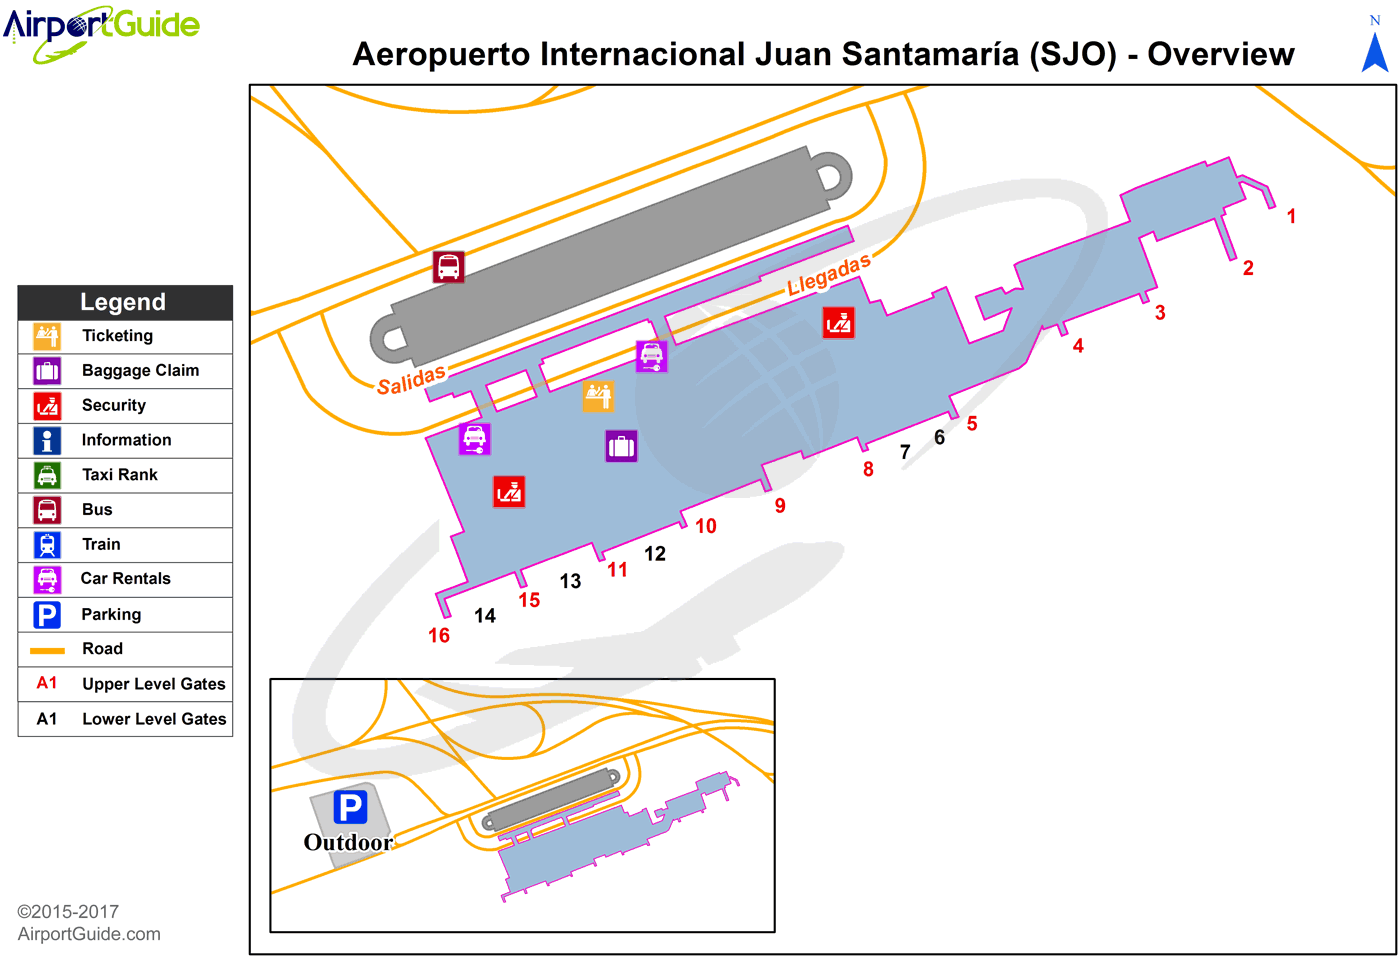 San Jose - Juan Santamaria International (SJO) Airport Terminal Map - Overview